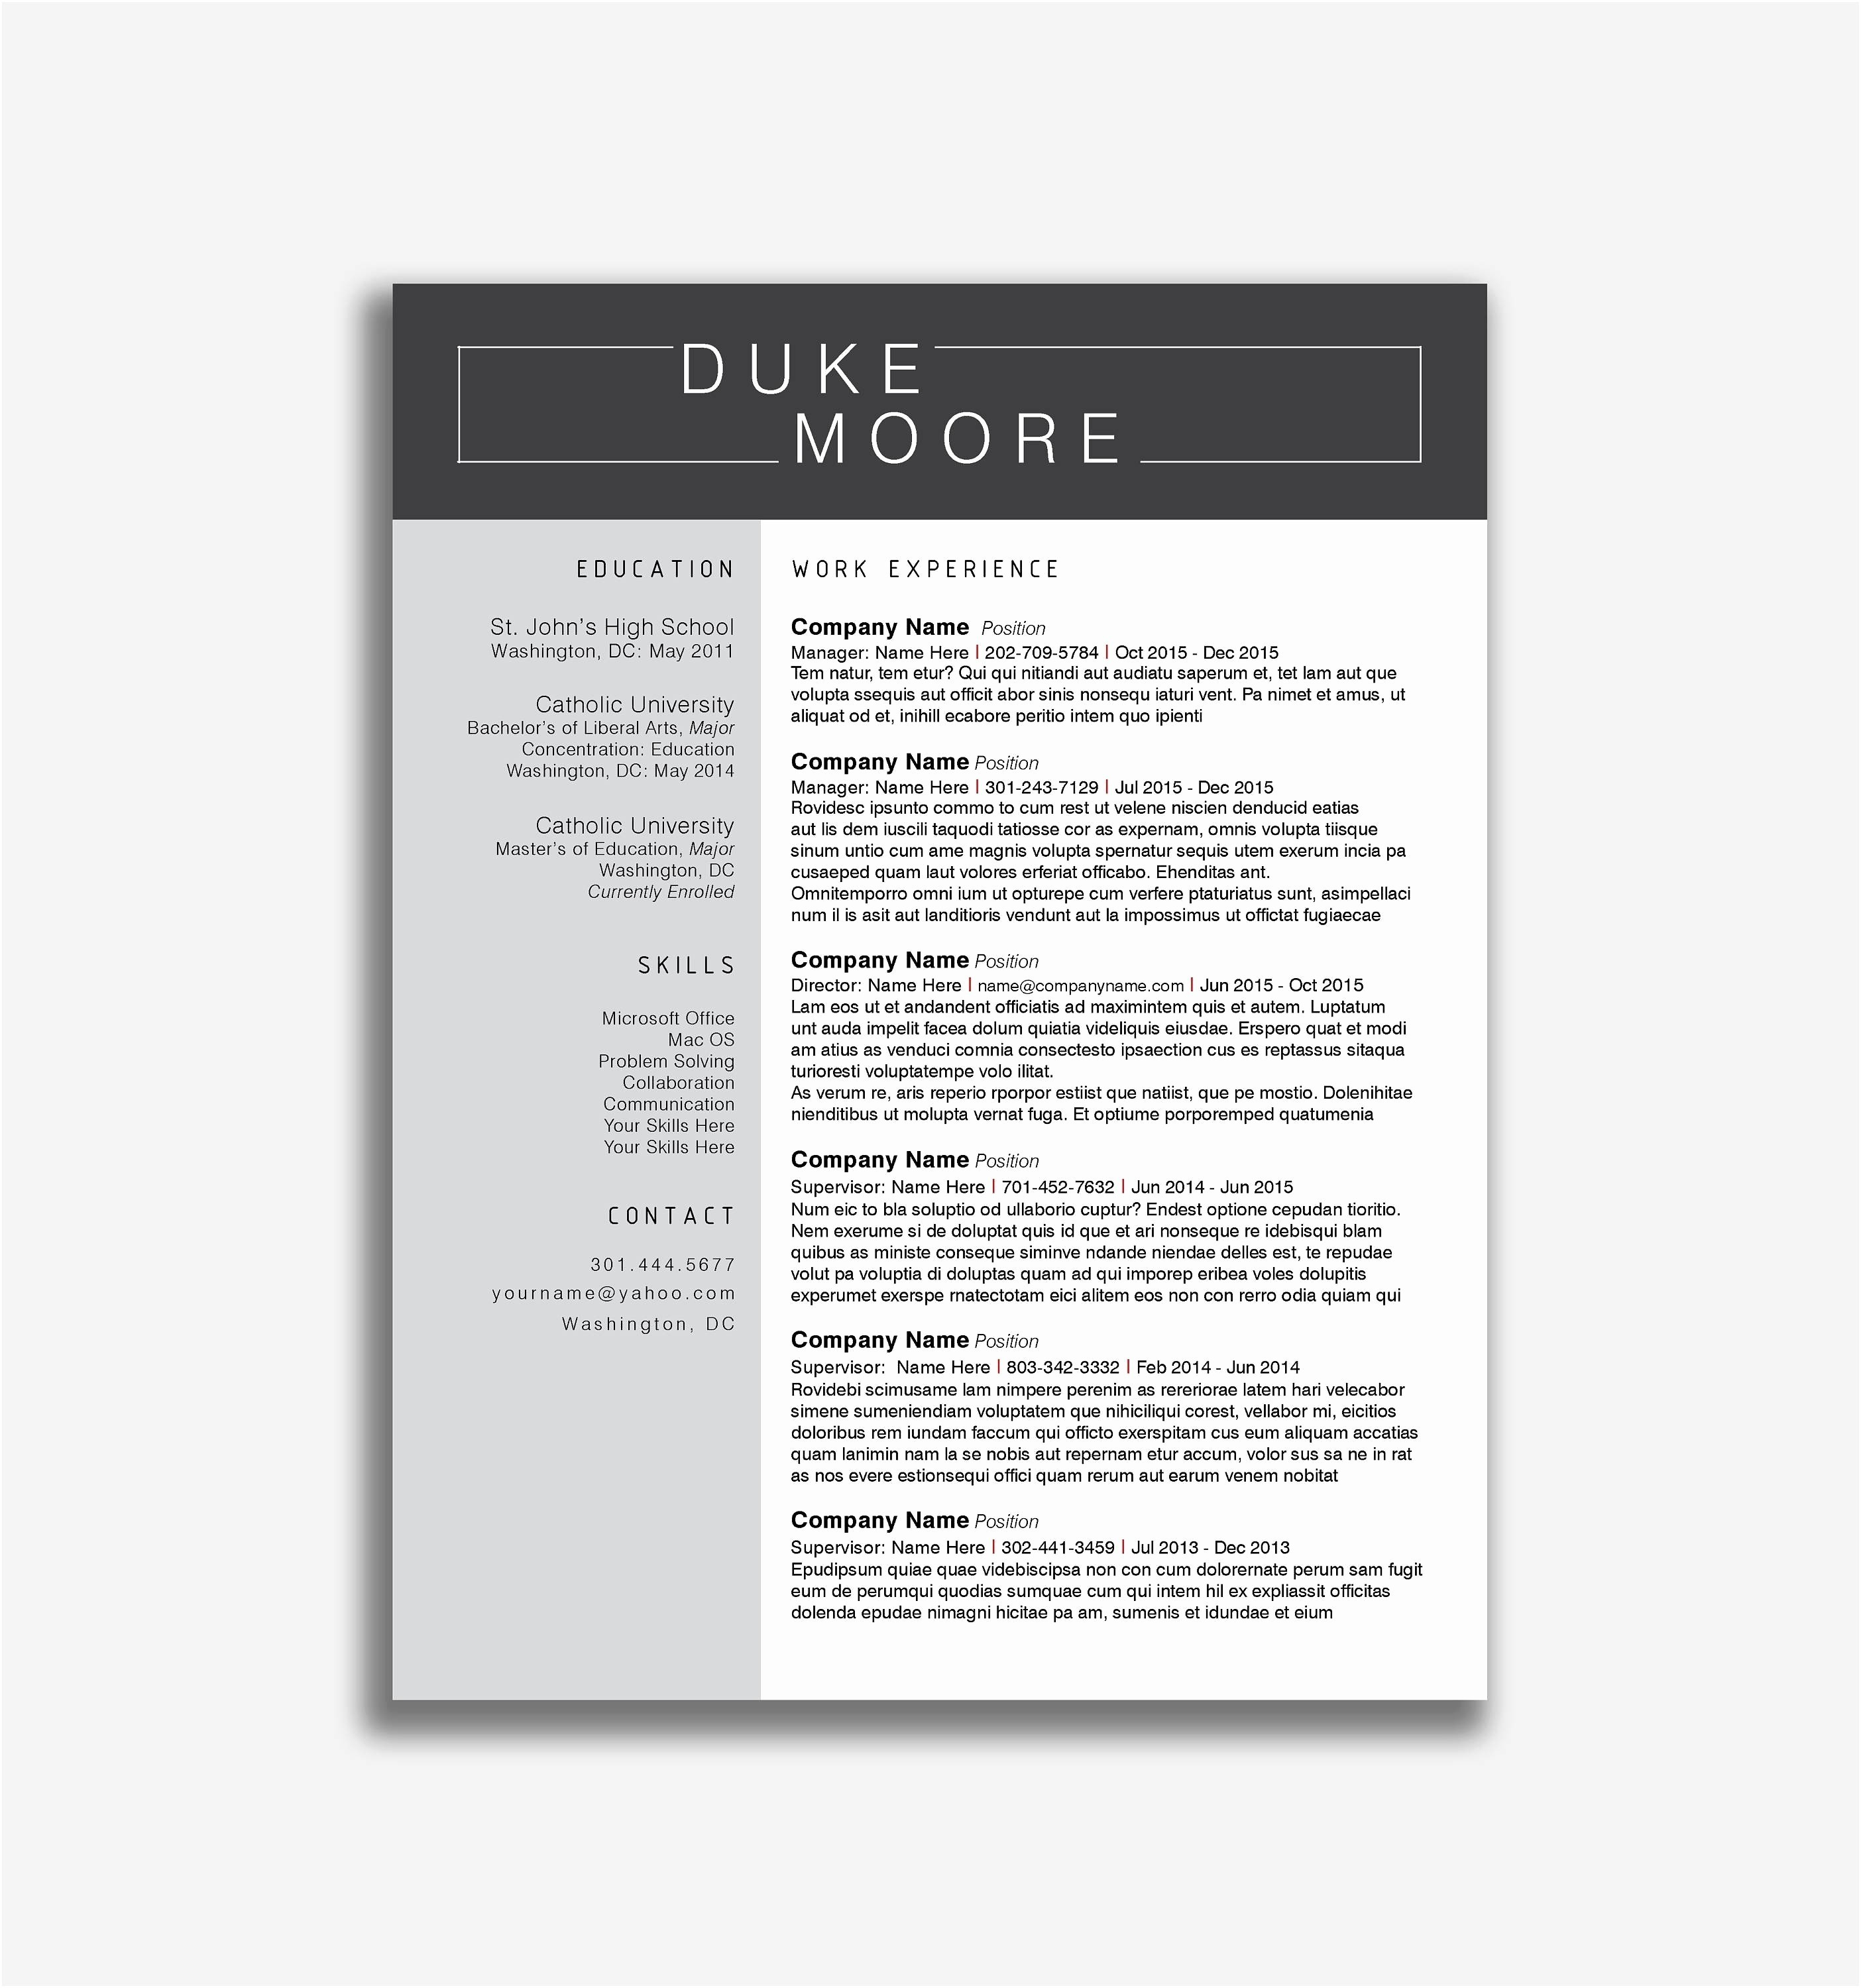 Social Media Specialist Resume - Sample Resume for social Media Specialist Lovely Resume Ex Lovely